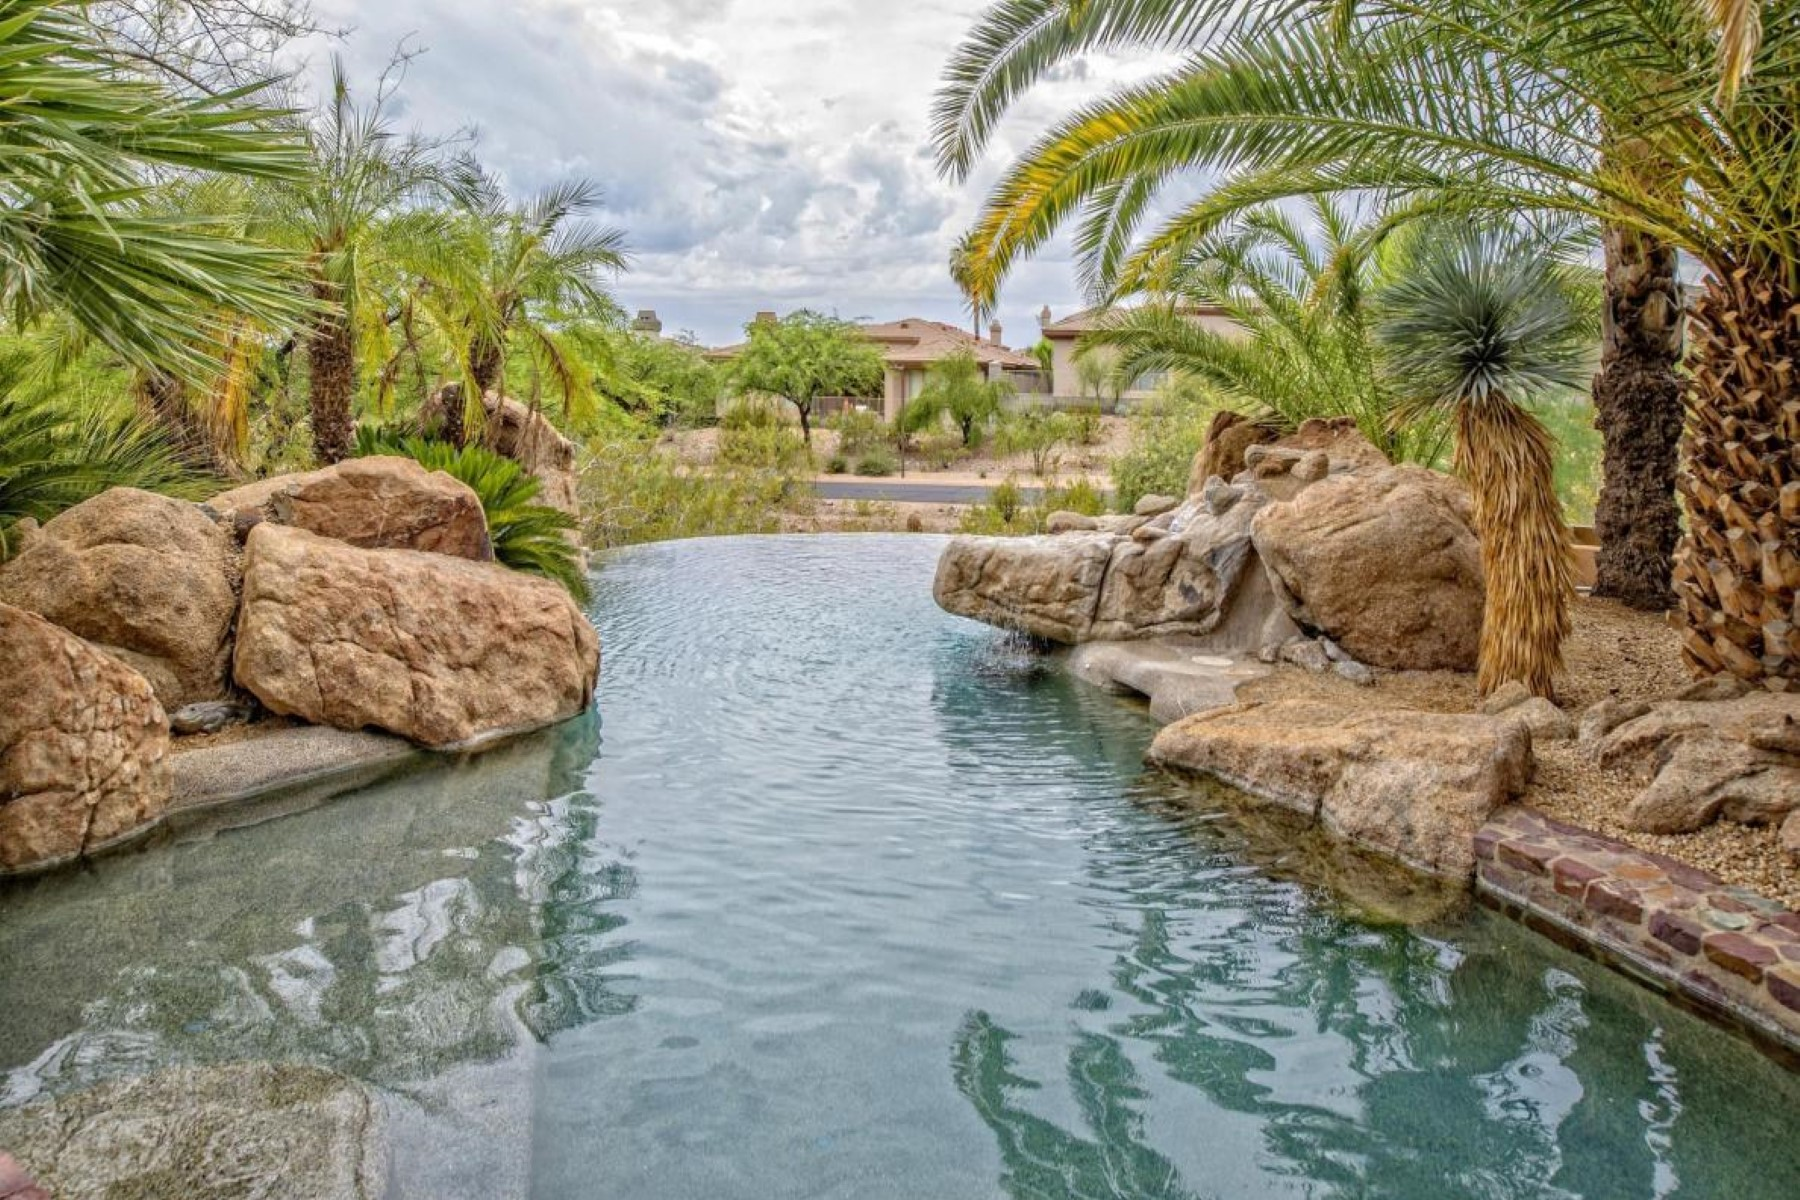 Single Family Home for Sale at This ''Jewel'' of the Biltmore Hillside Estates. 6546 N Arizona Biltmore Circle Phoenix, Arizona, 85016 United States